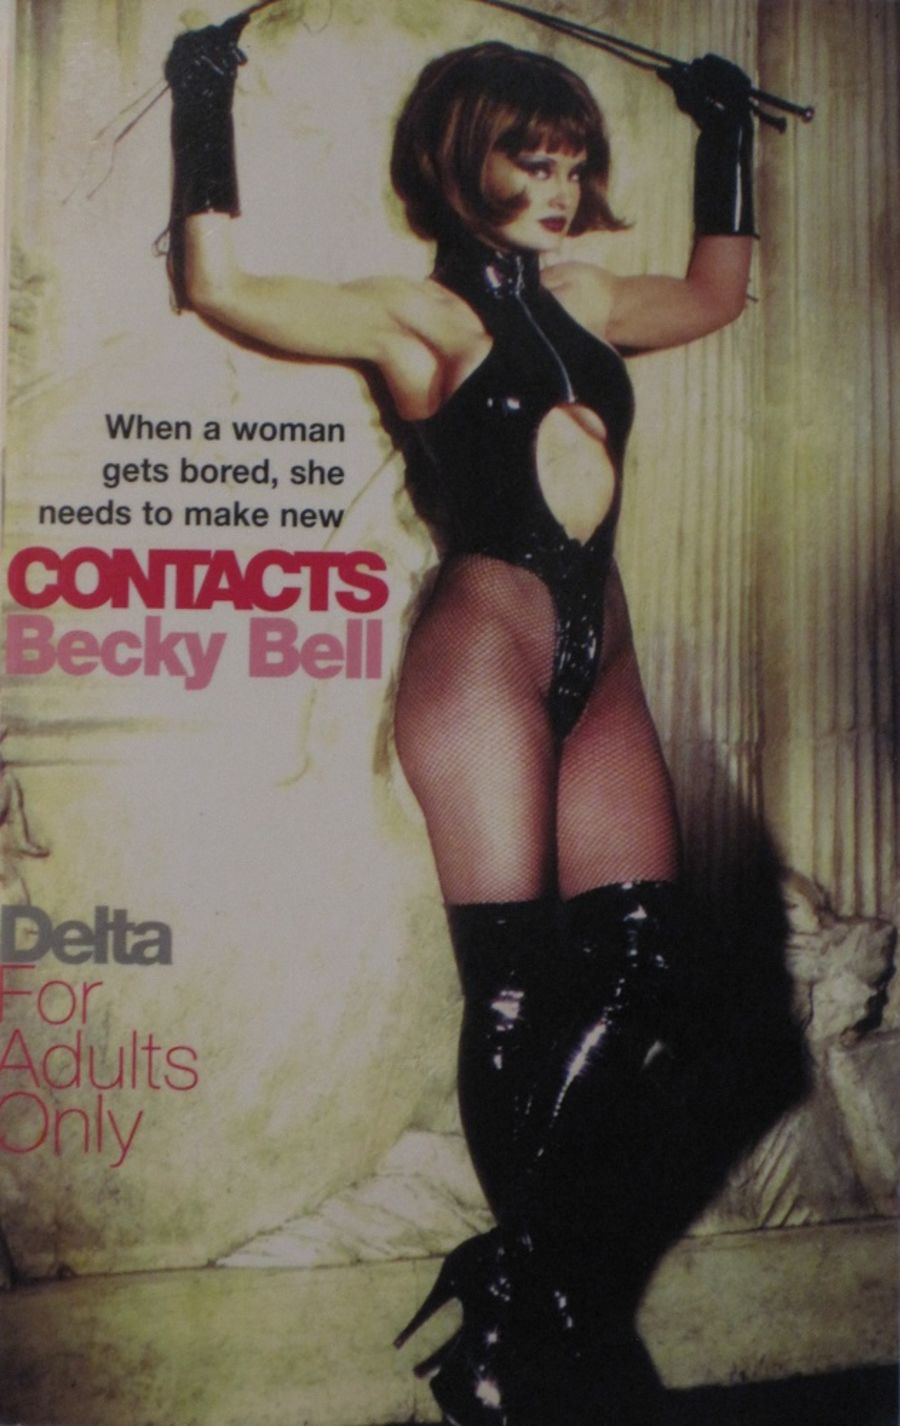 CONTACTS.  1998 EROTIC FICTION PAPERBACK BOOK.